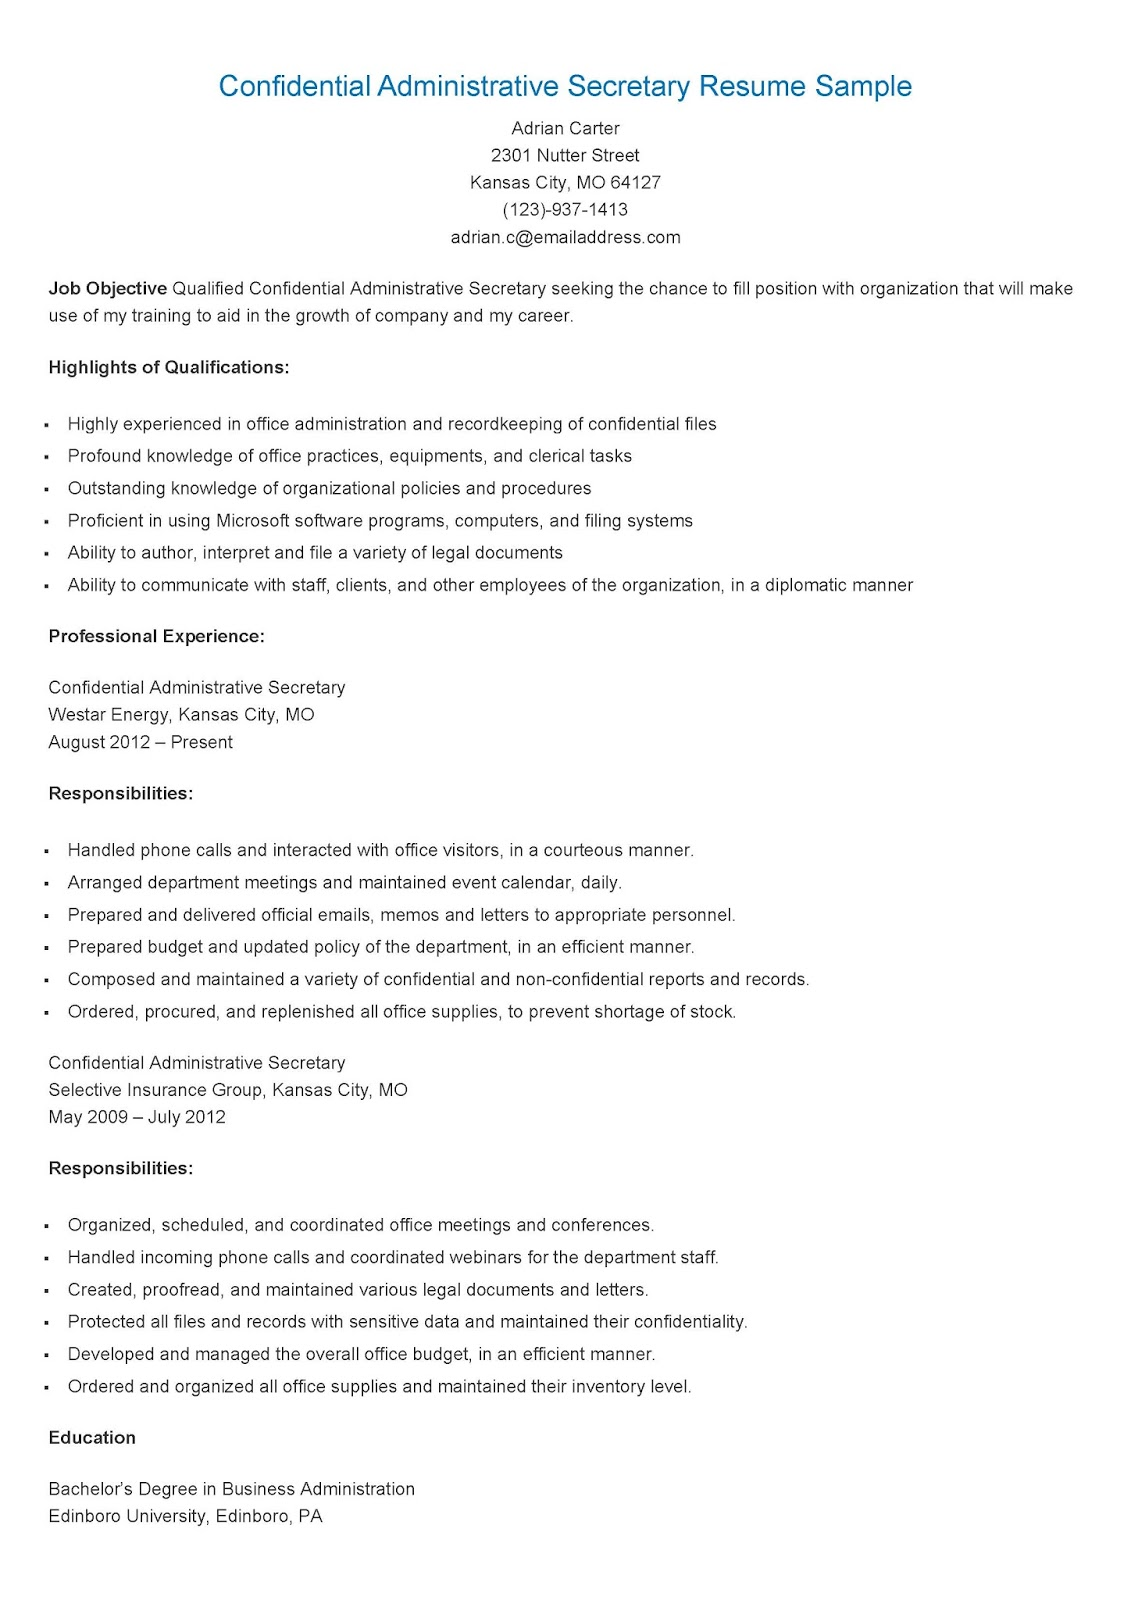 Resume Sample For Secretary Resume Samples Confidential Administrative Secretary